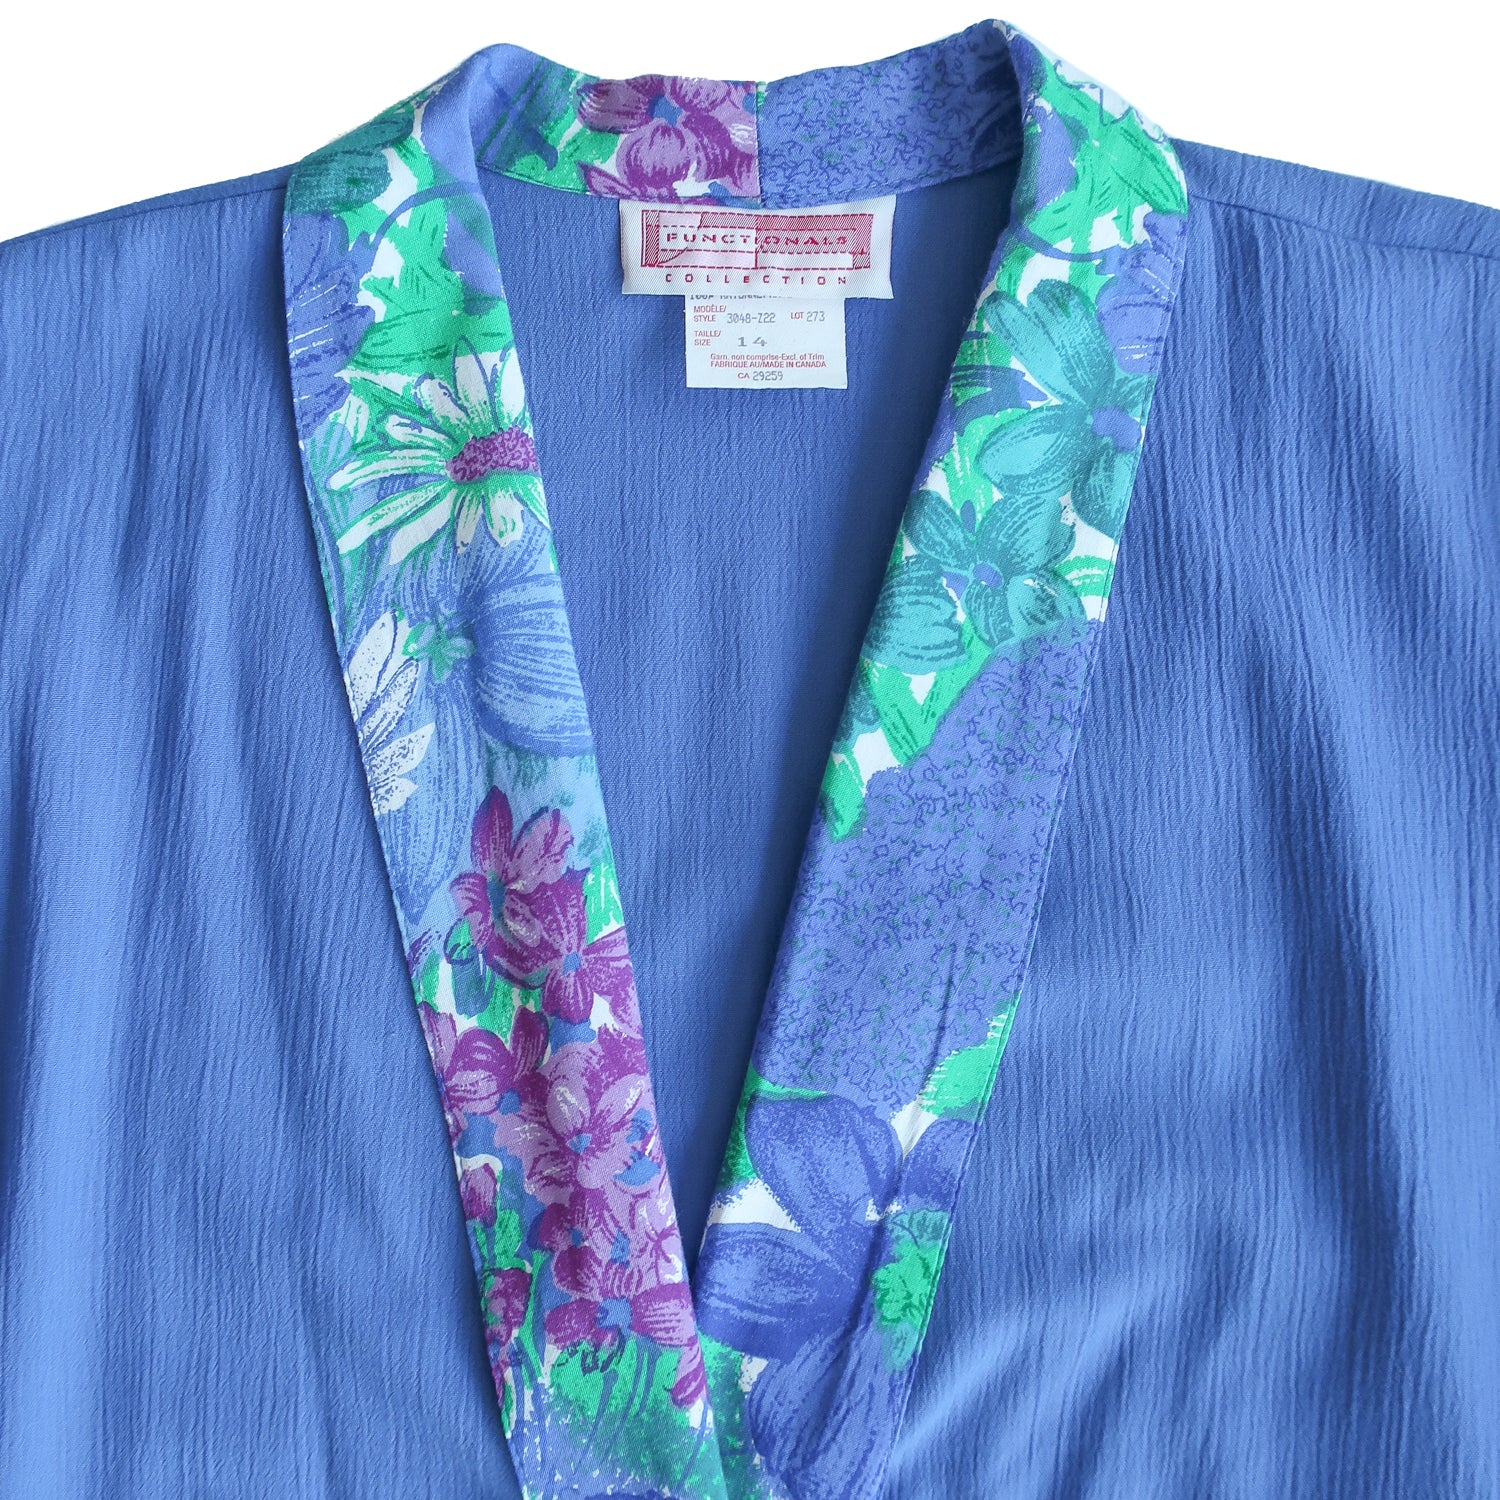 Second Room Vintage Clothing. Vintage blue blazer with floral print lining, which shows in the collar and the cuffs, when they are rolled up. Free North American shipping on all orders.